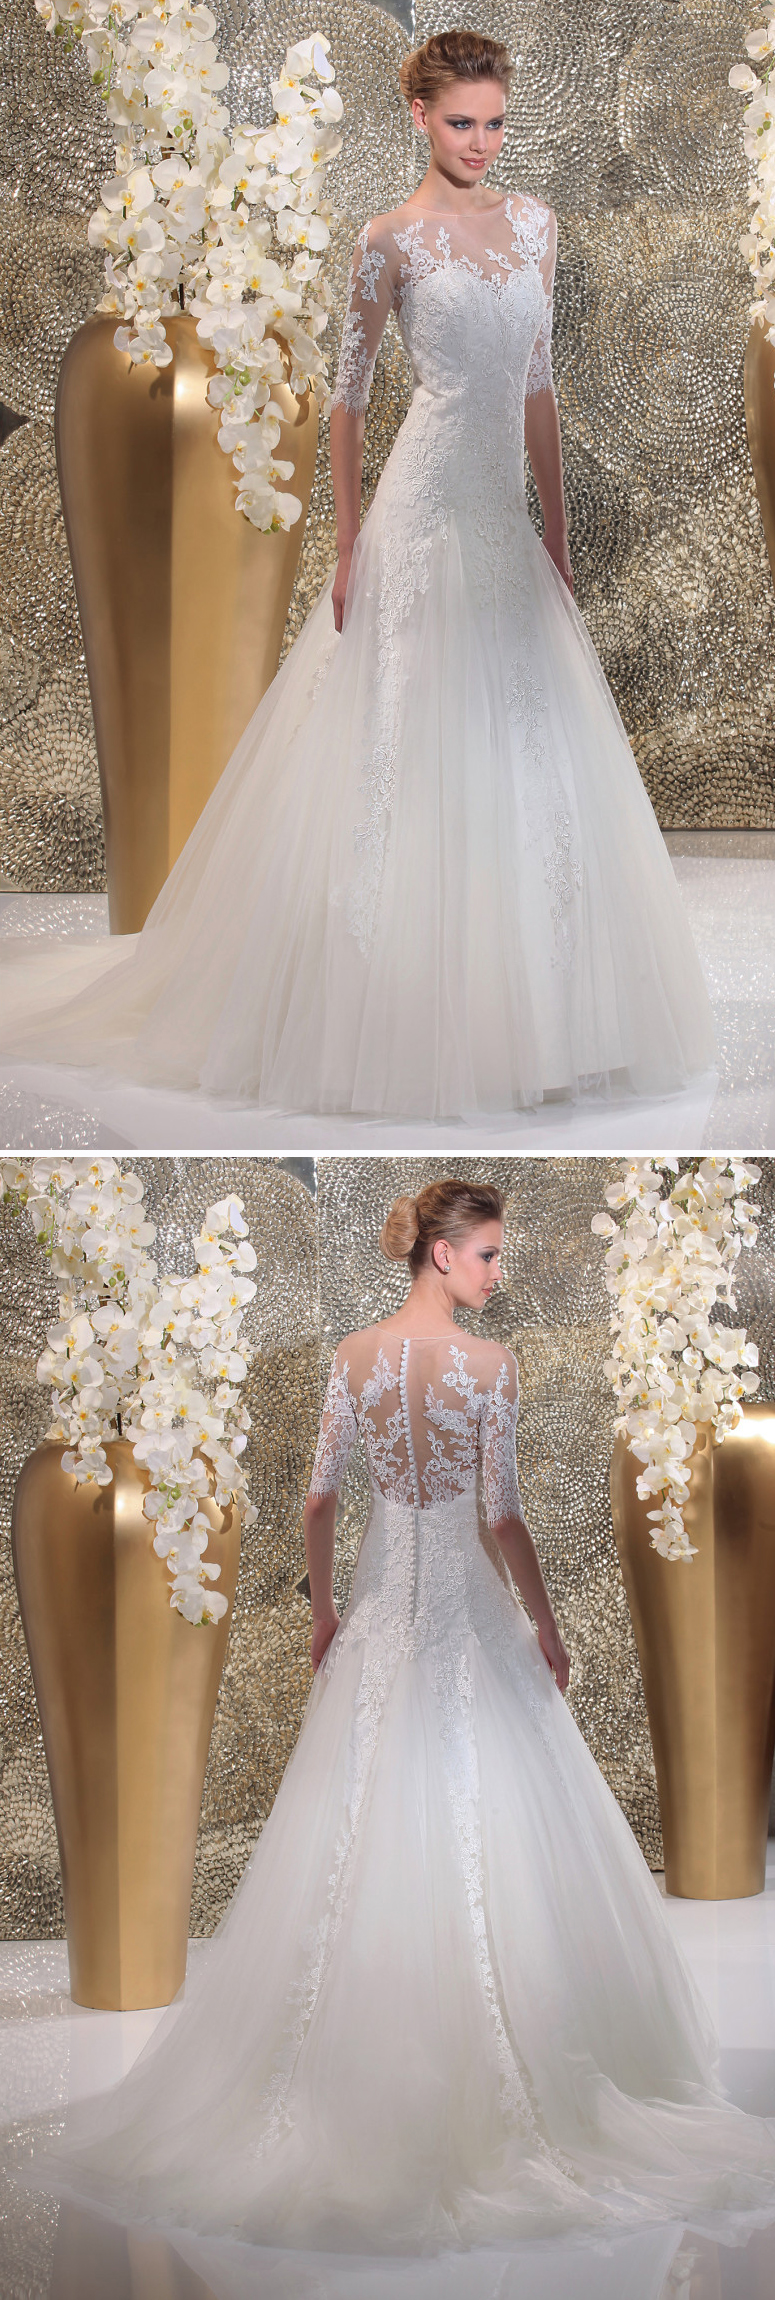 Isabel de Mestre - Gold Label Kollektion 2016: Brautkleid \